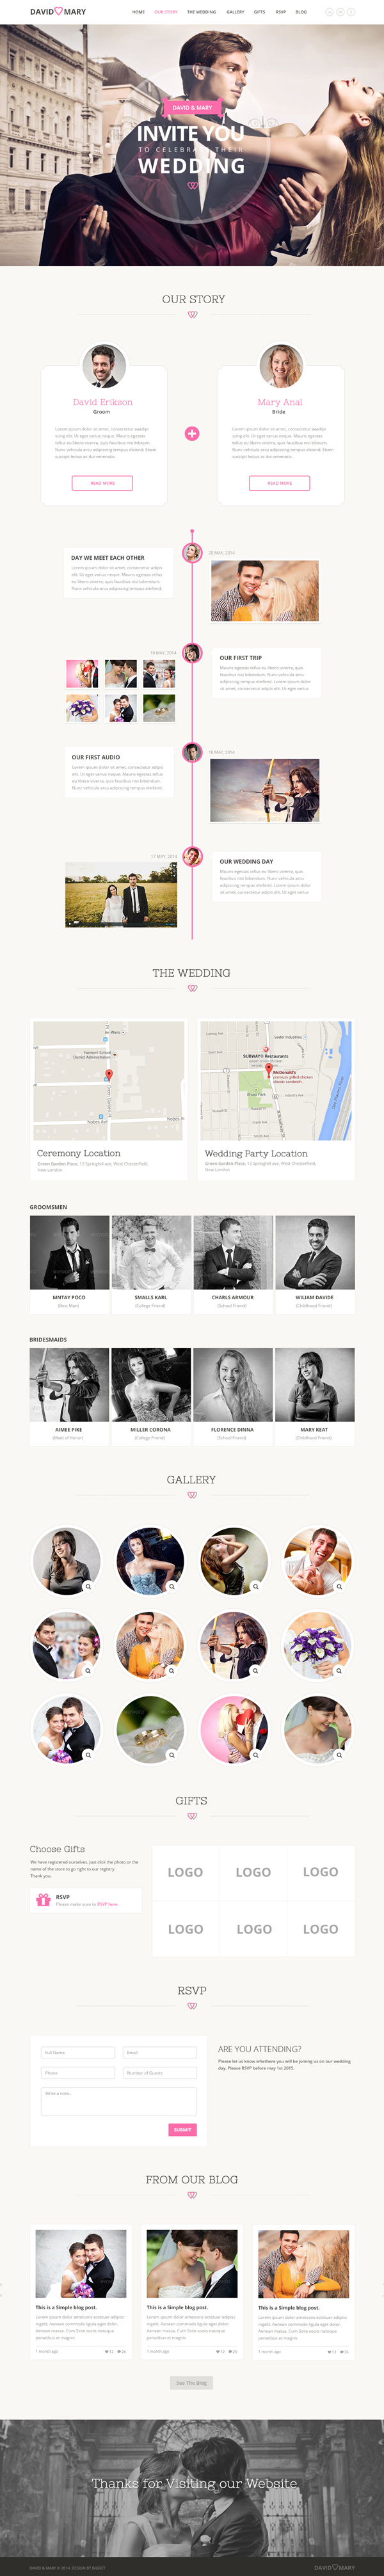 David & Mary - Event & Wedding PSD HTML5 Template